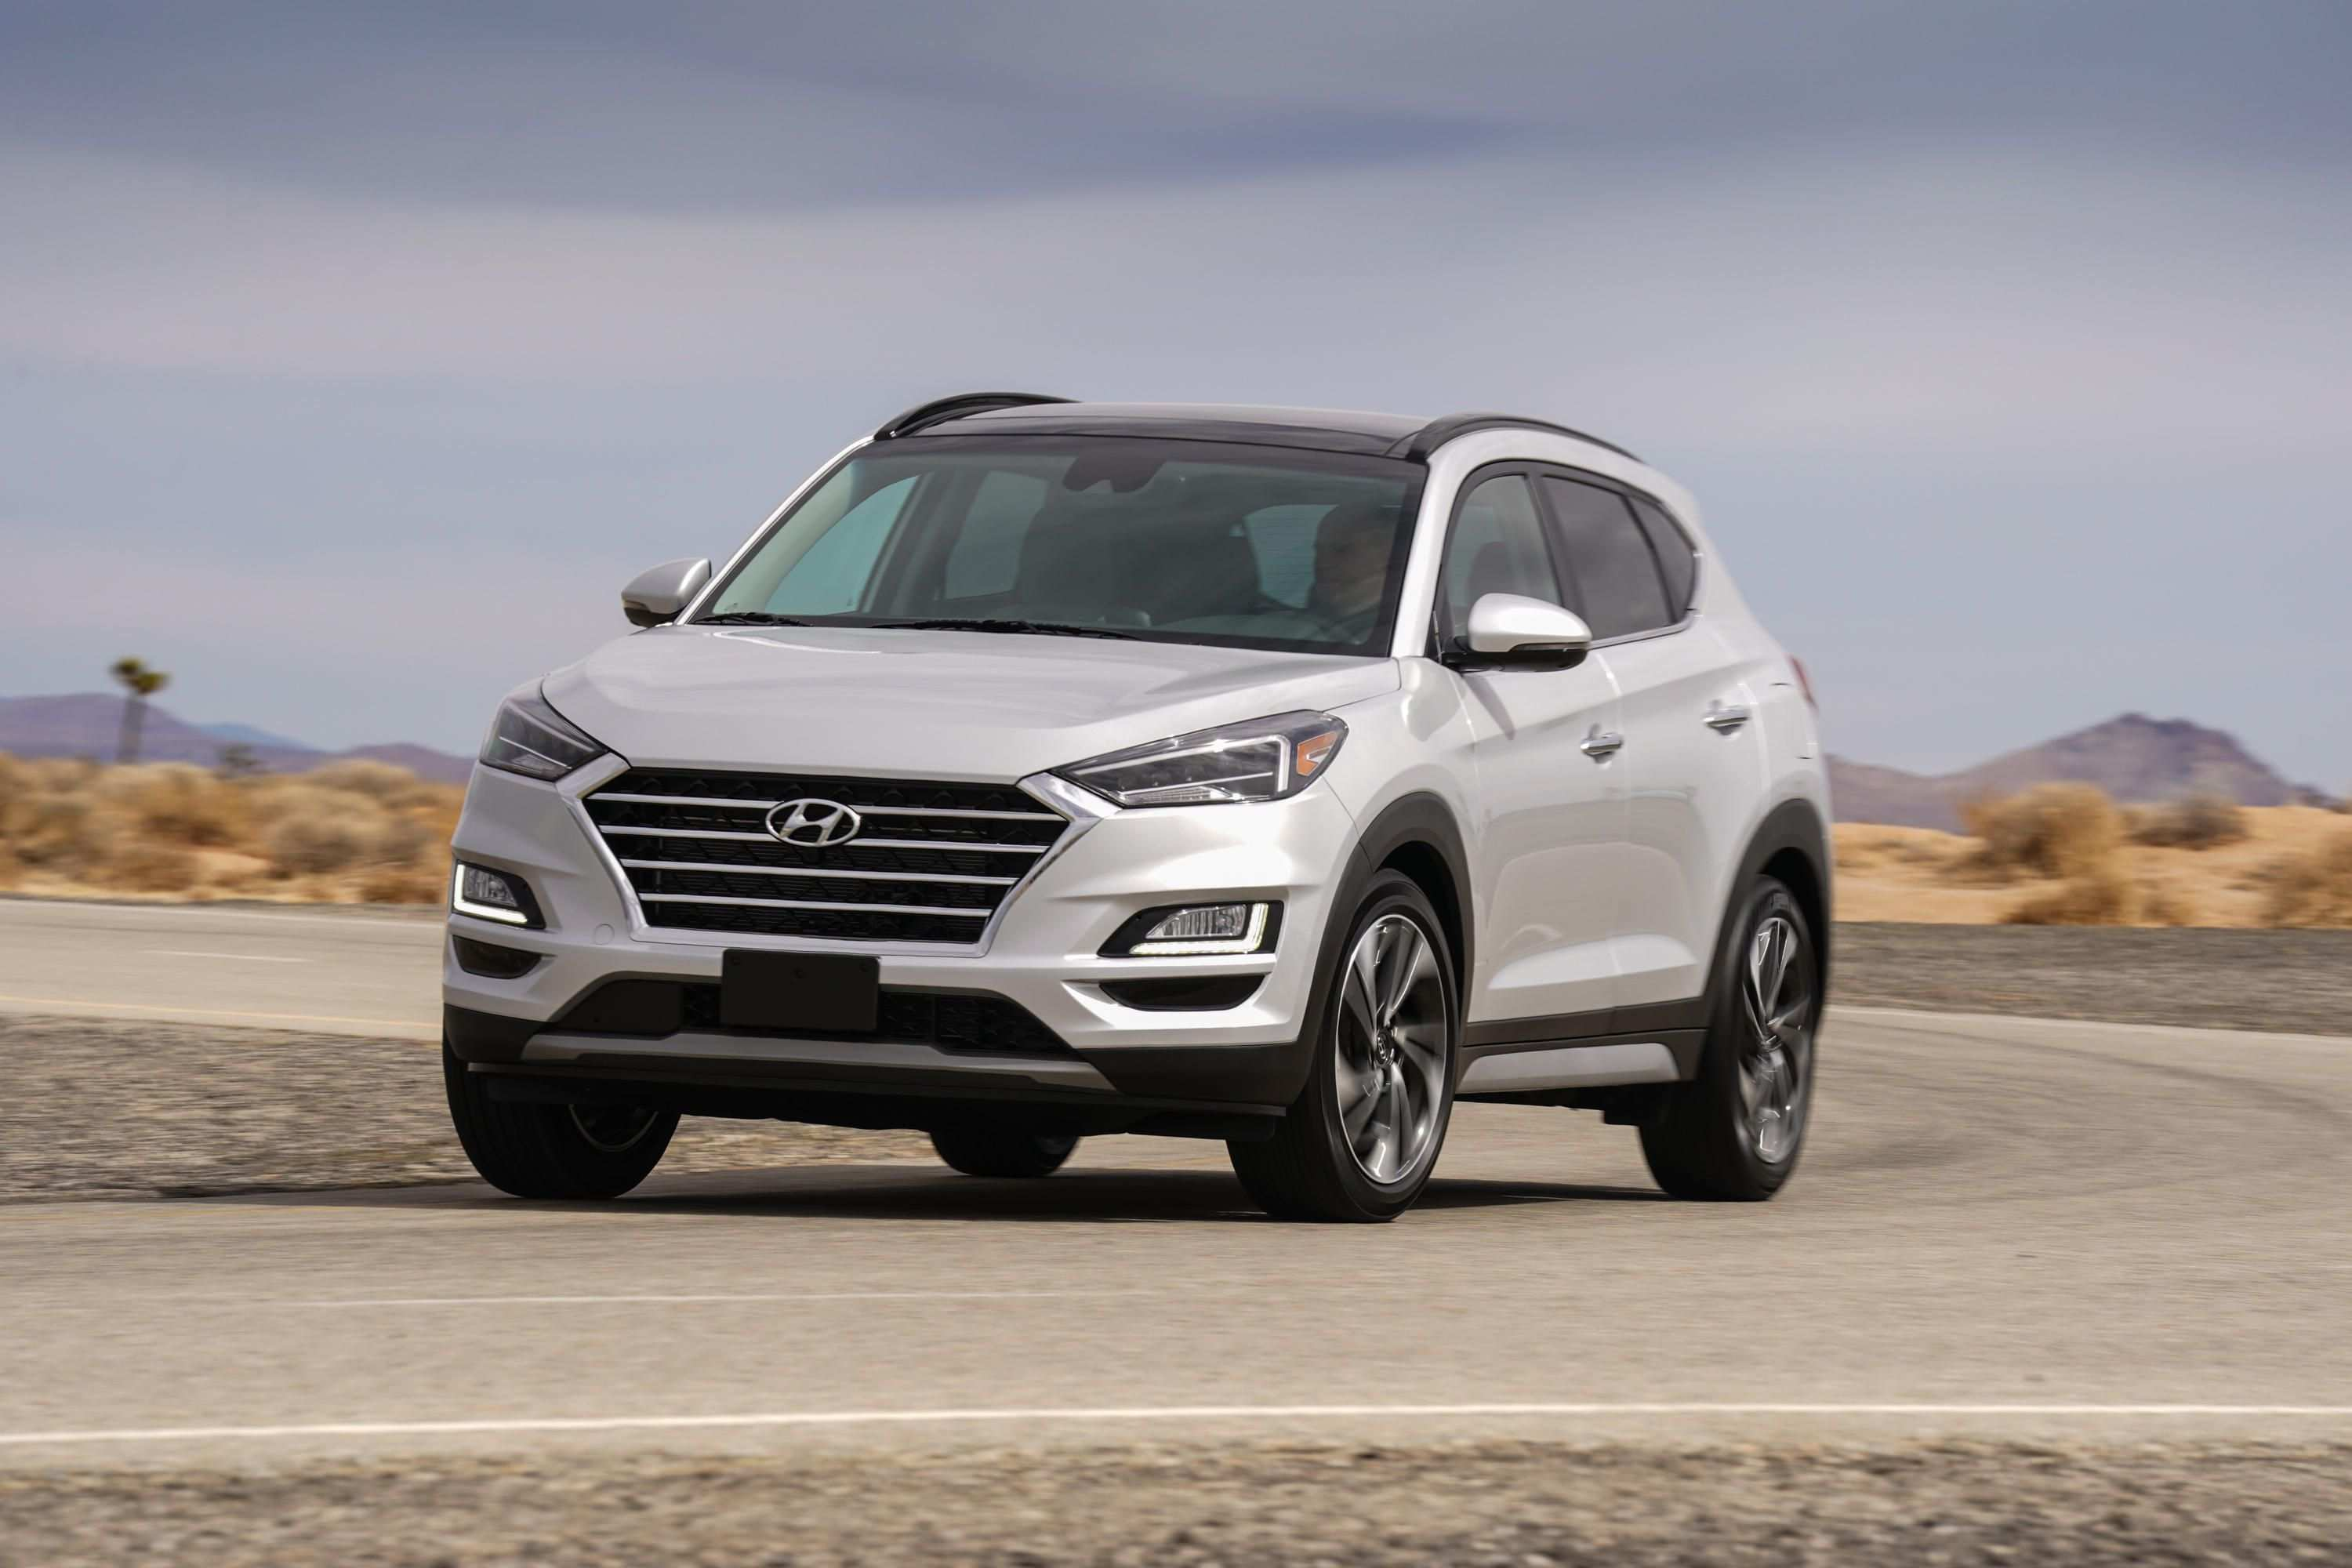 86 Concept of 2019 Hyundai Crossover Spesification for 2019 Hyundai Crossover